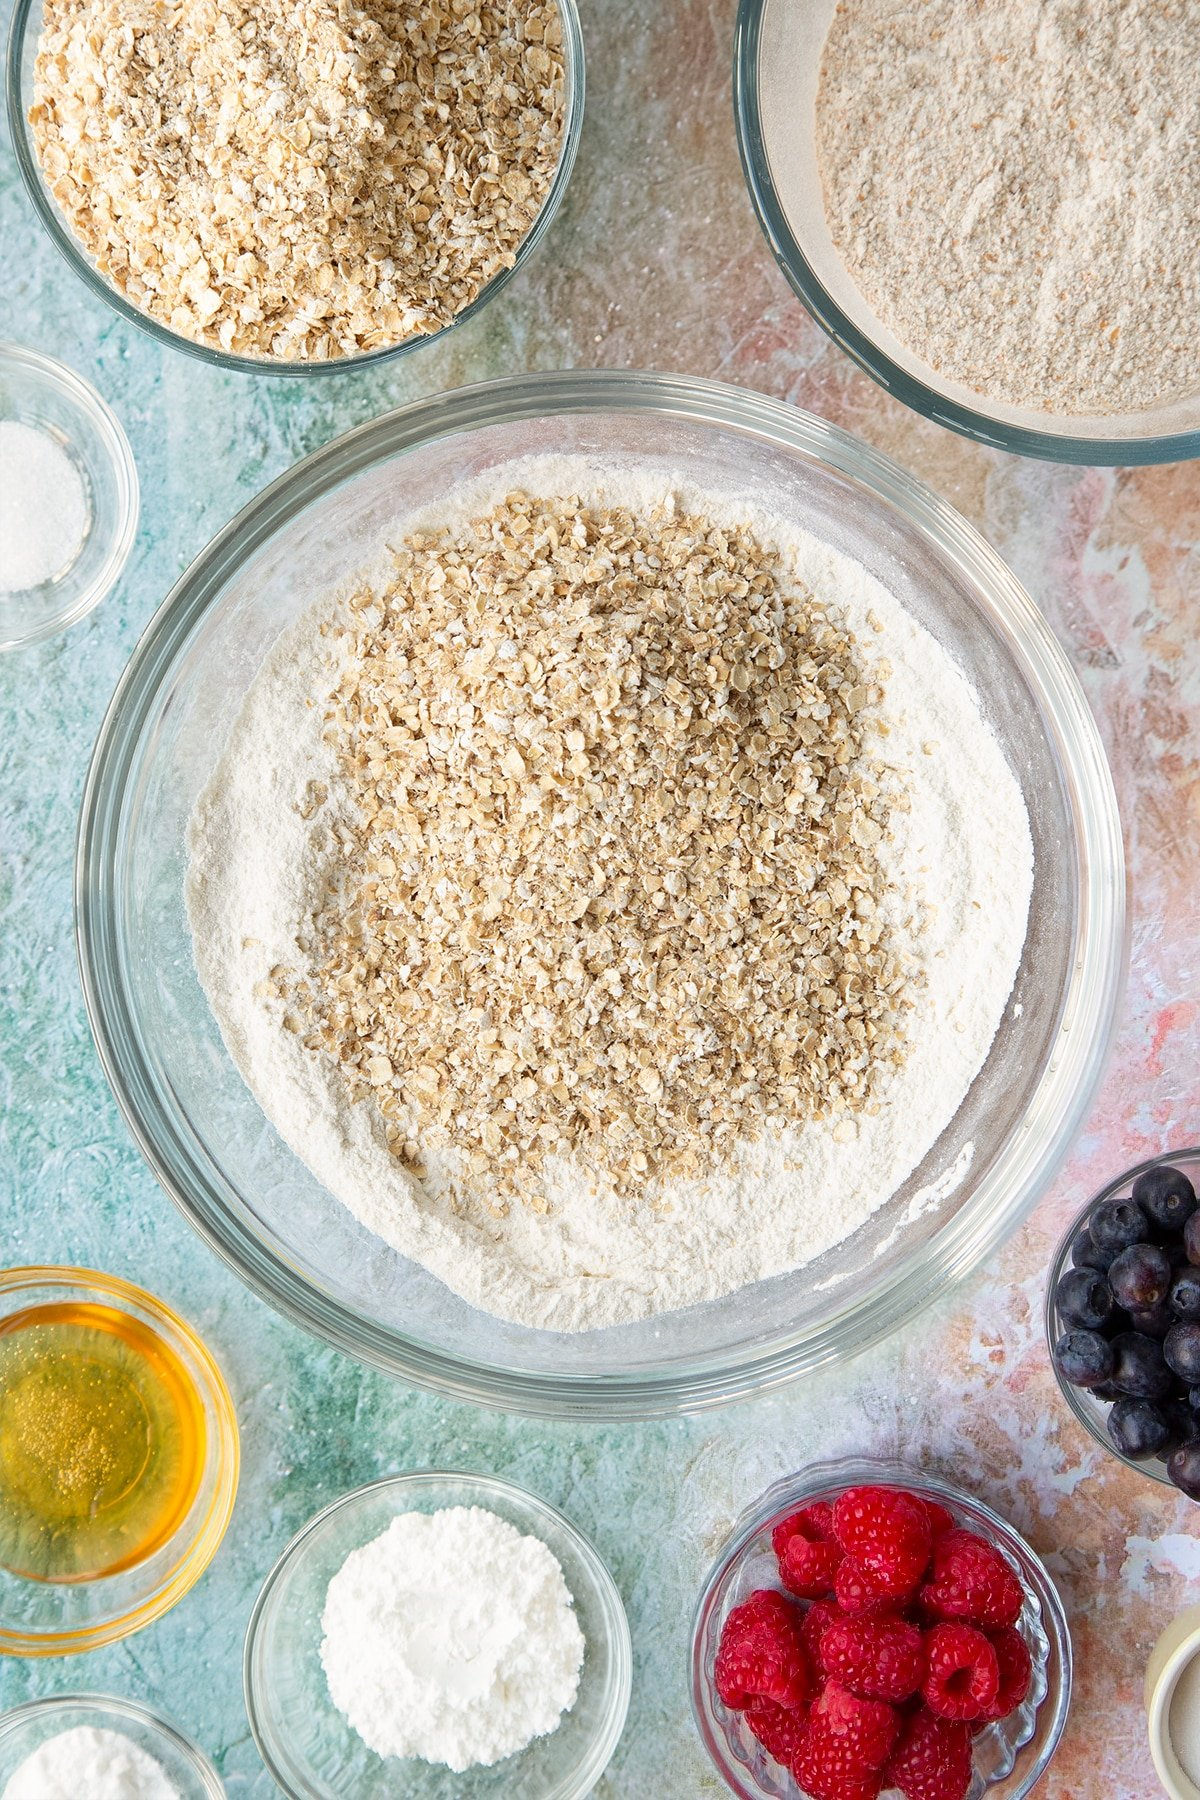 Self-raising flour, bicarbonate of soda and sugar combined in a glass mixing bowl with oats on top. Ingredients to make oatmeal scones surround the bowl.